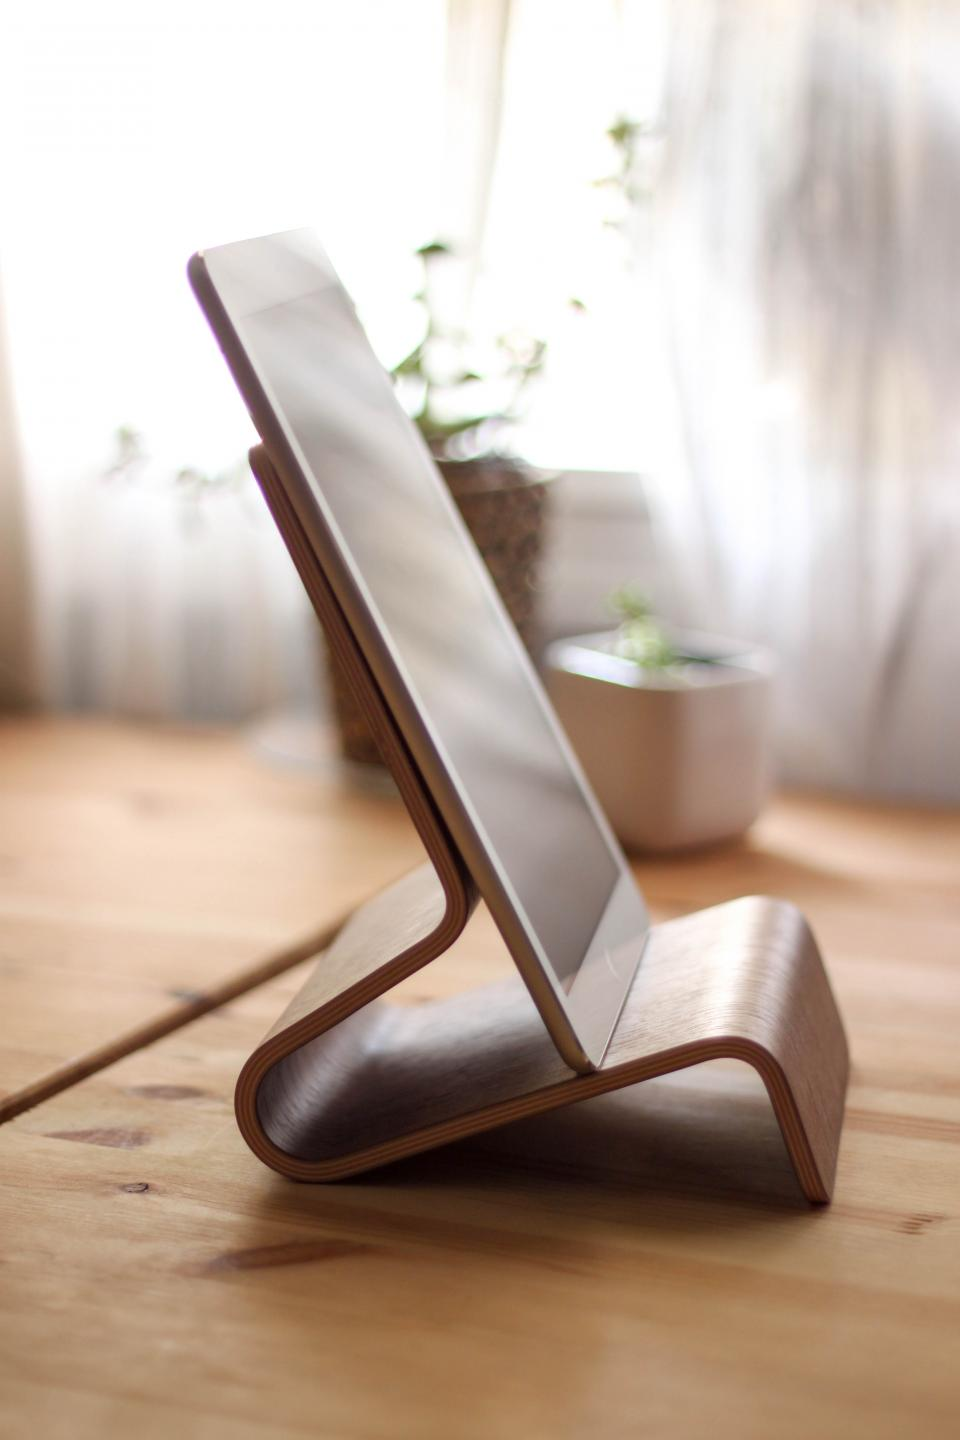 ipad tablet stand wood technology office business desk